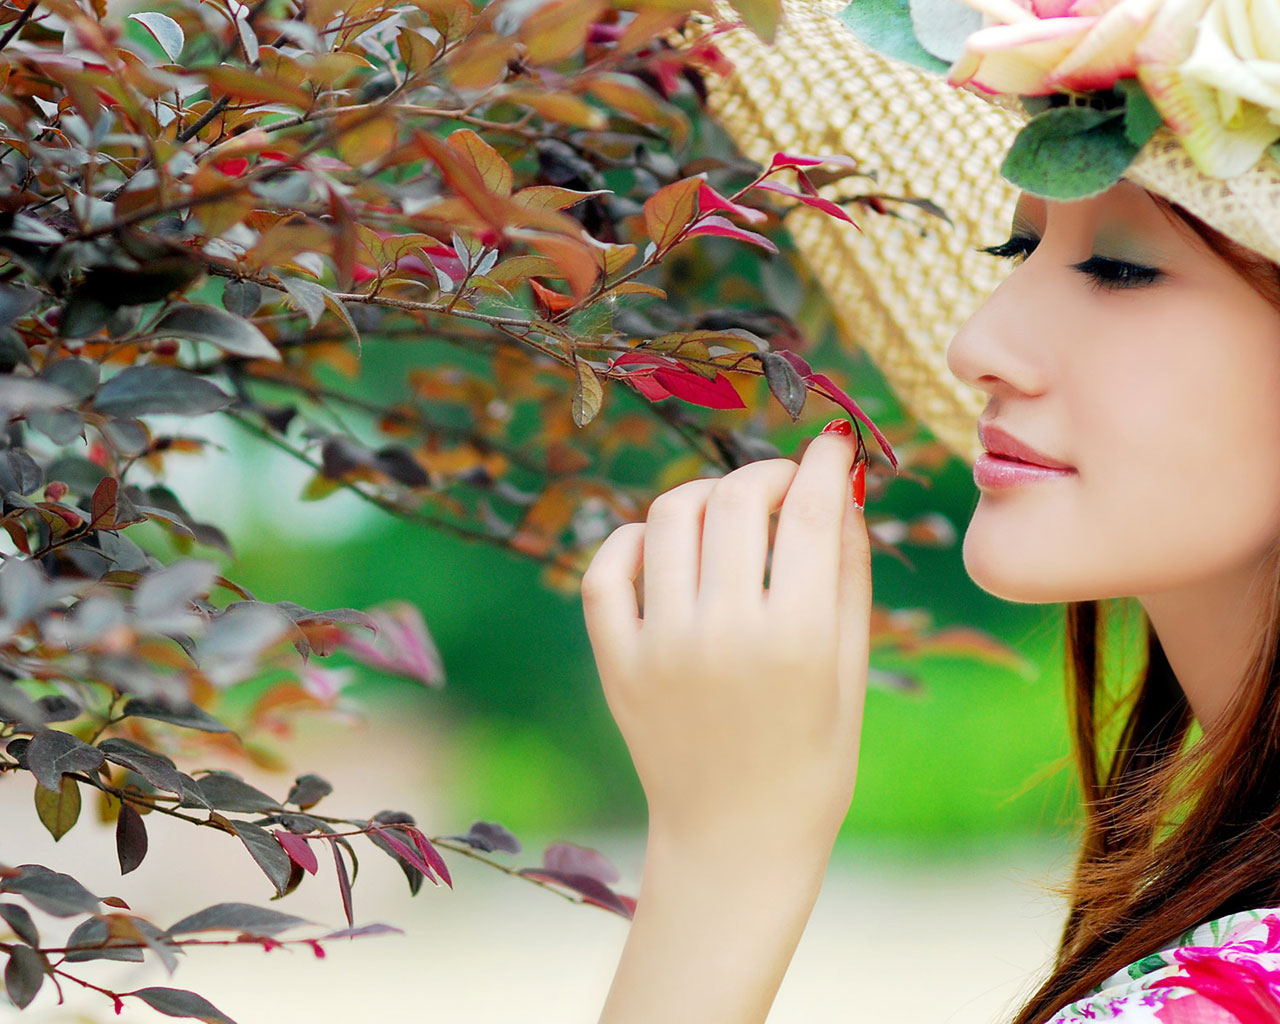 cute girl with sweet style wallpaper - lovely girl in colorful